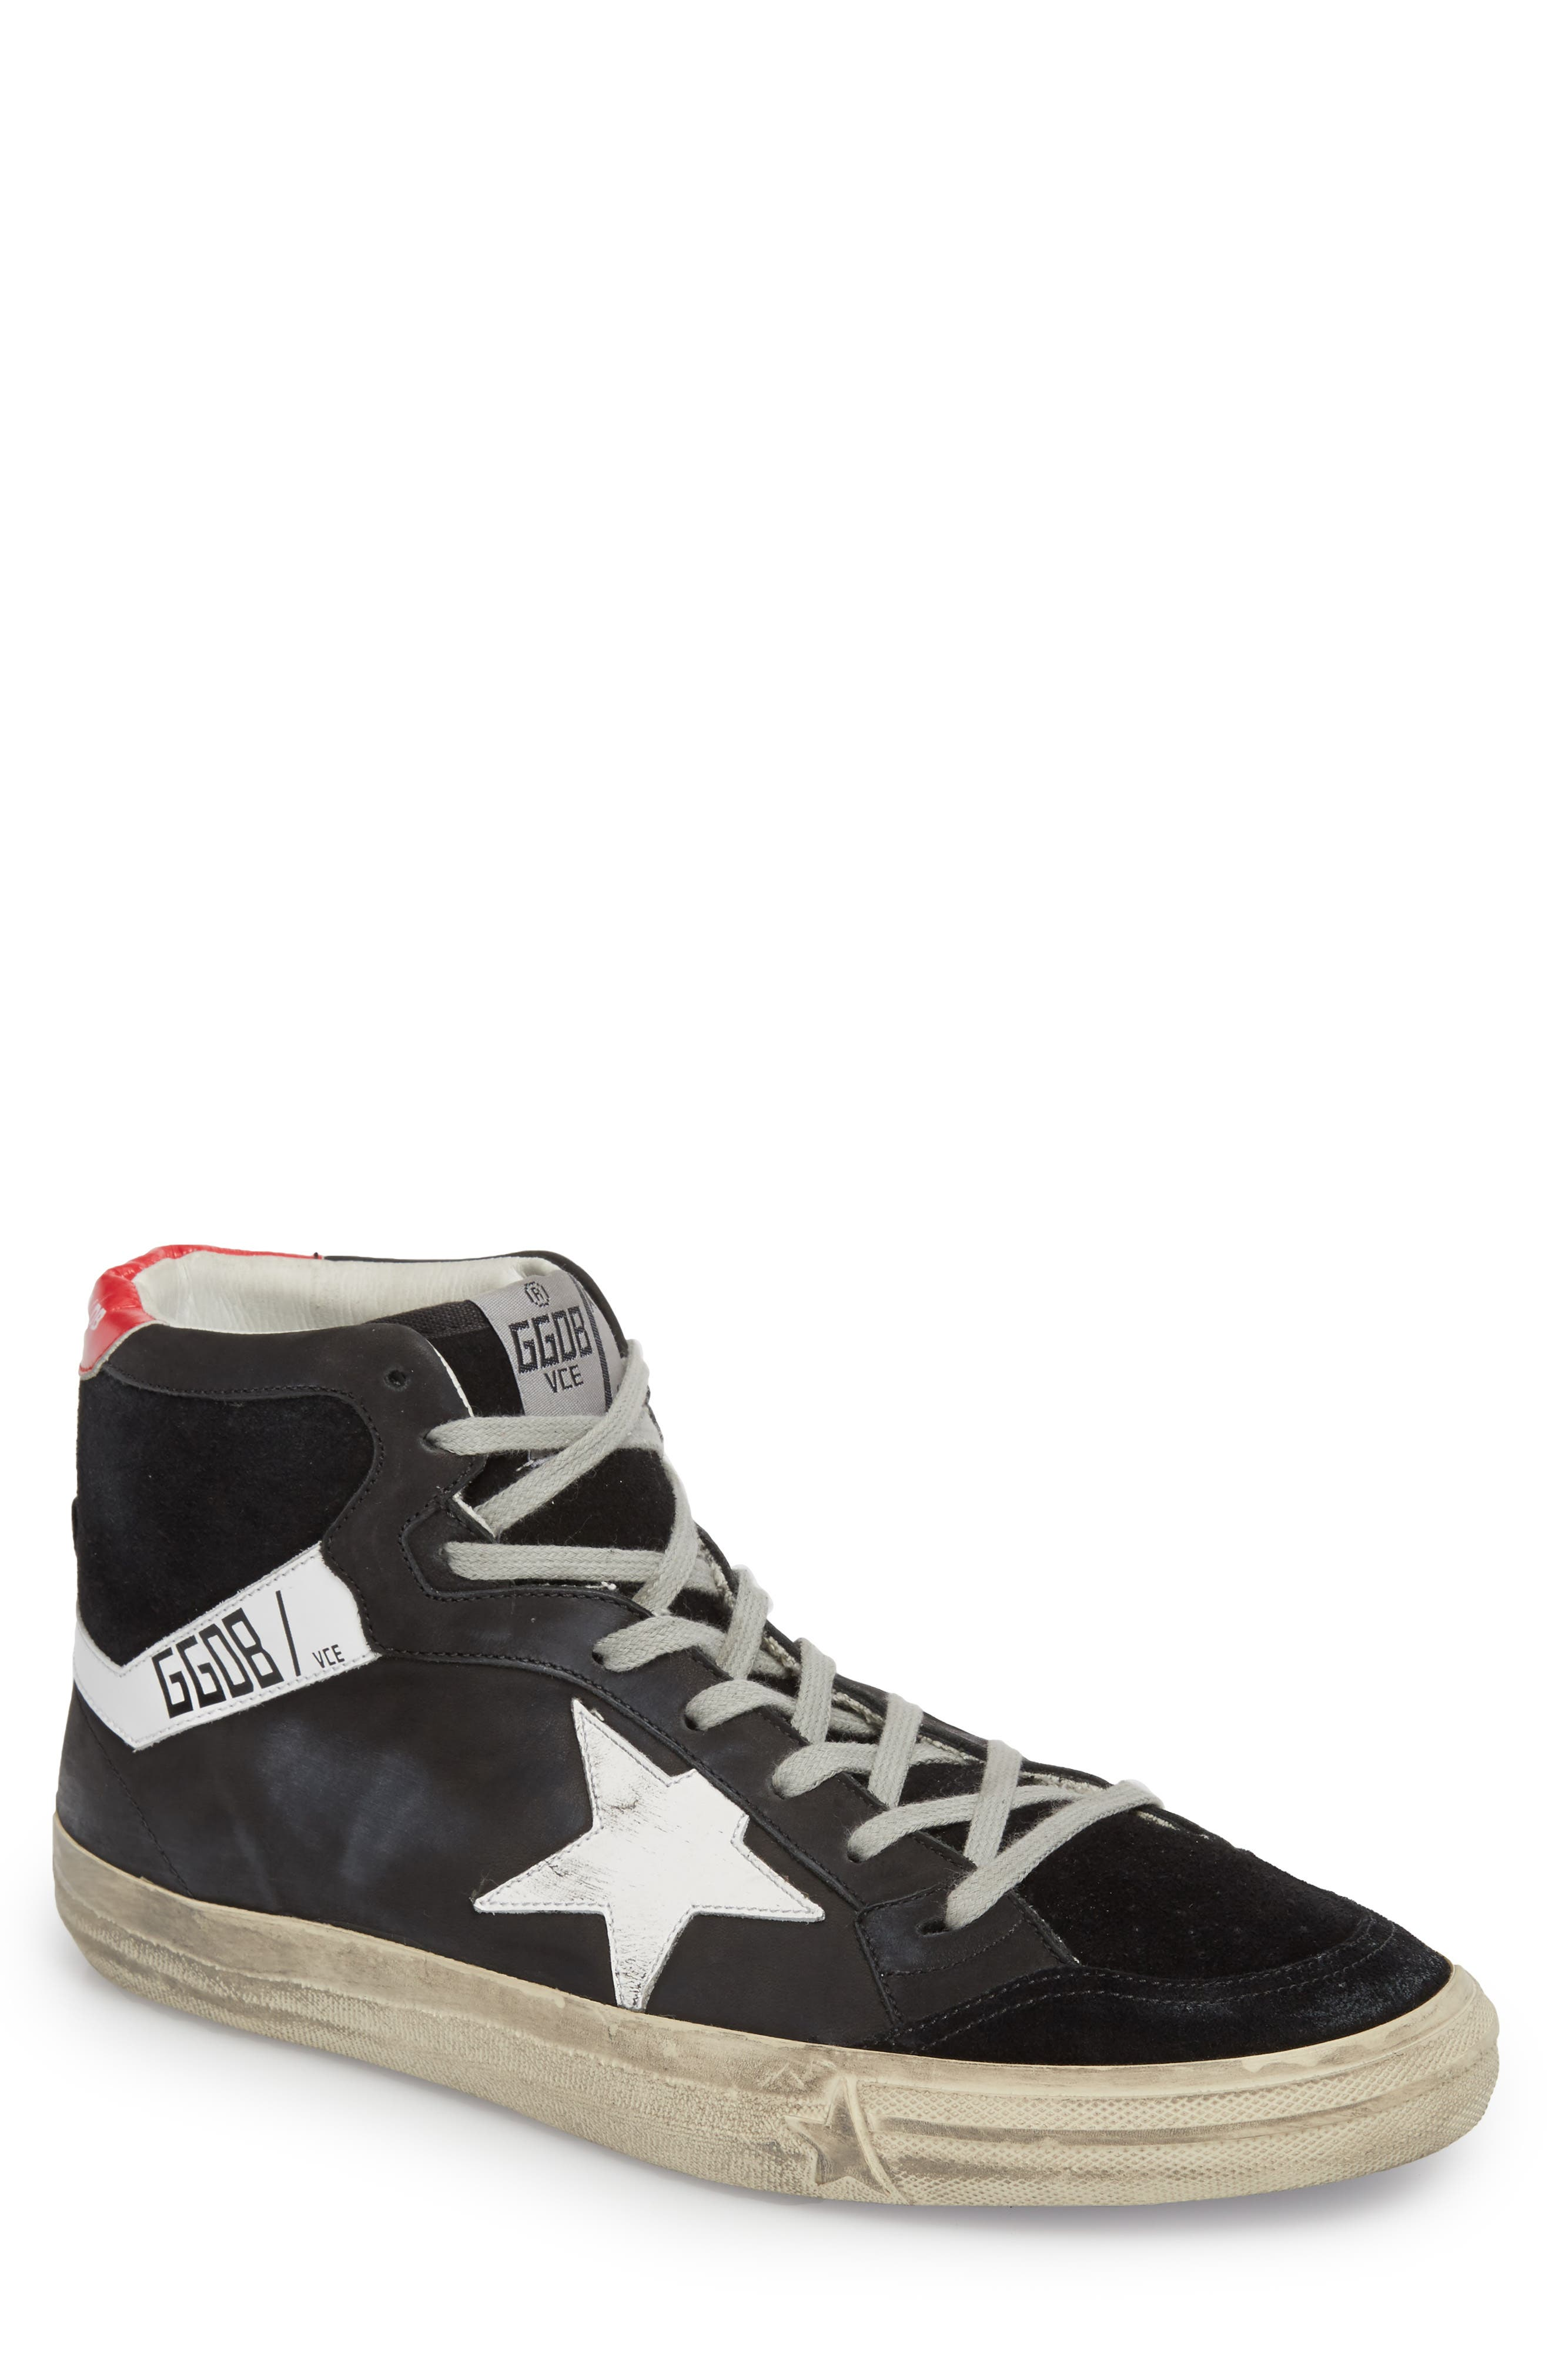 Main Image - Golden Goose High Top Sneaker (Men)